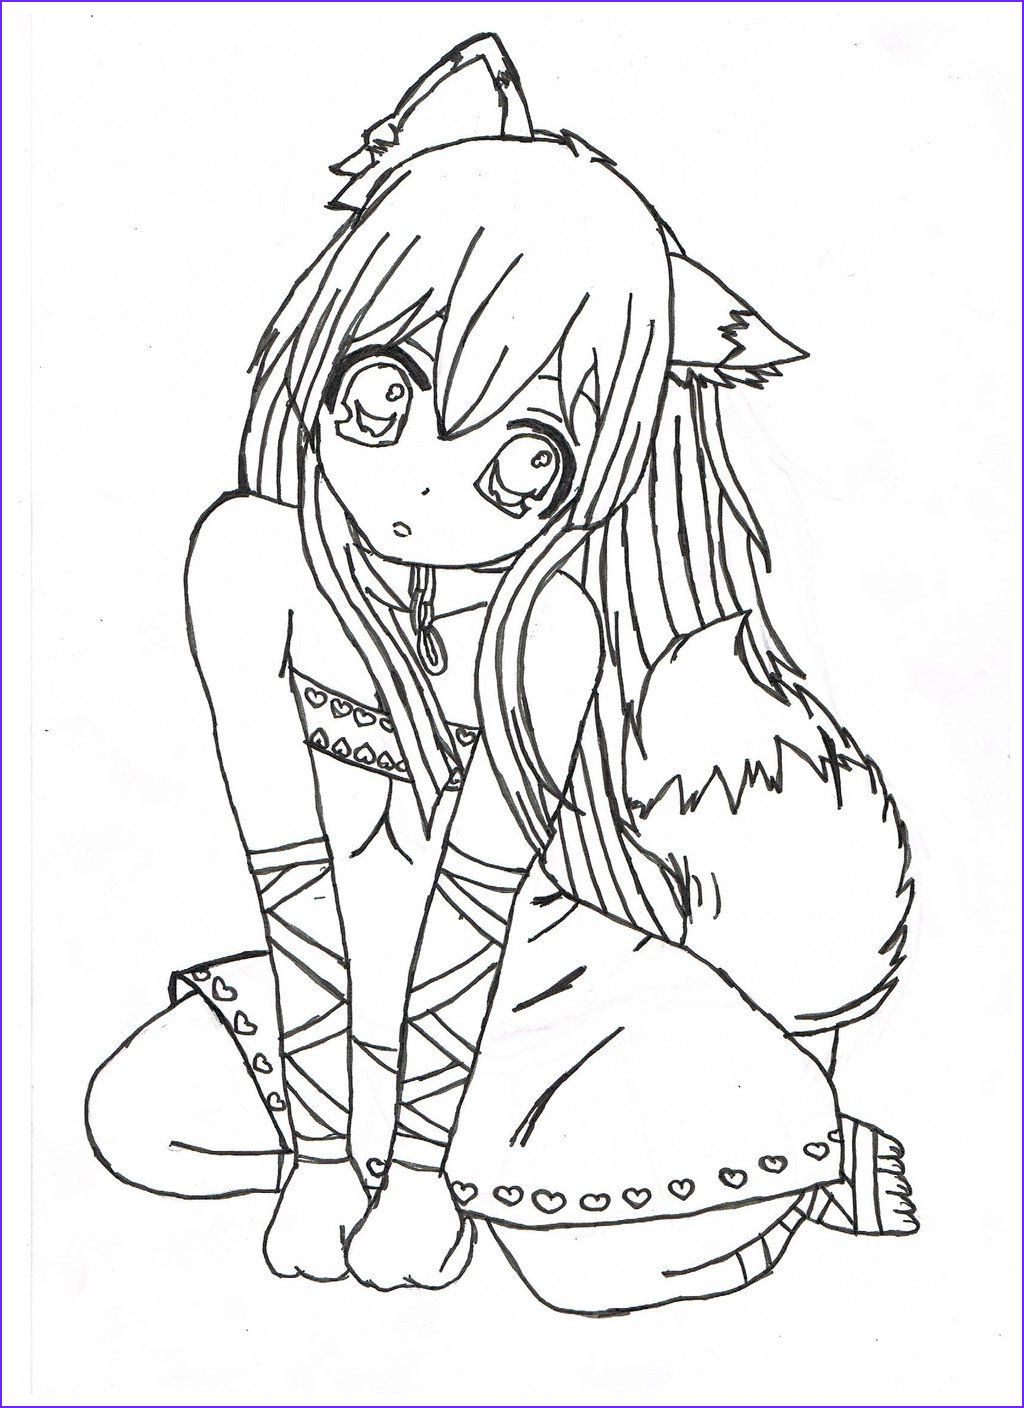 Anime Wolf Girl Coloring Page Cool Collection Pin On Mcoloring